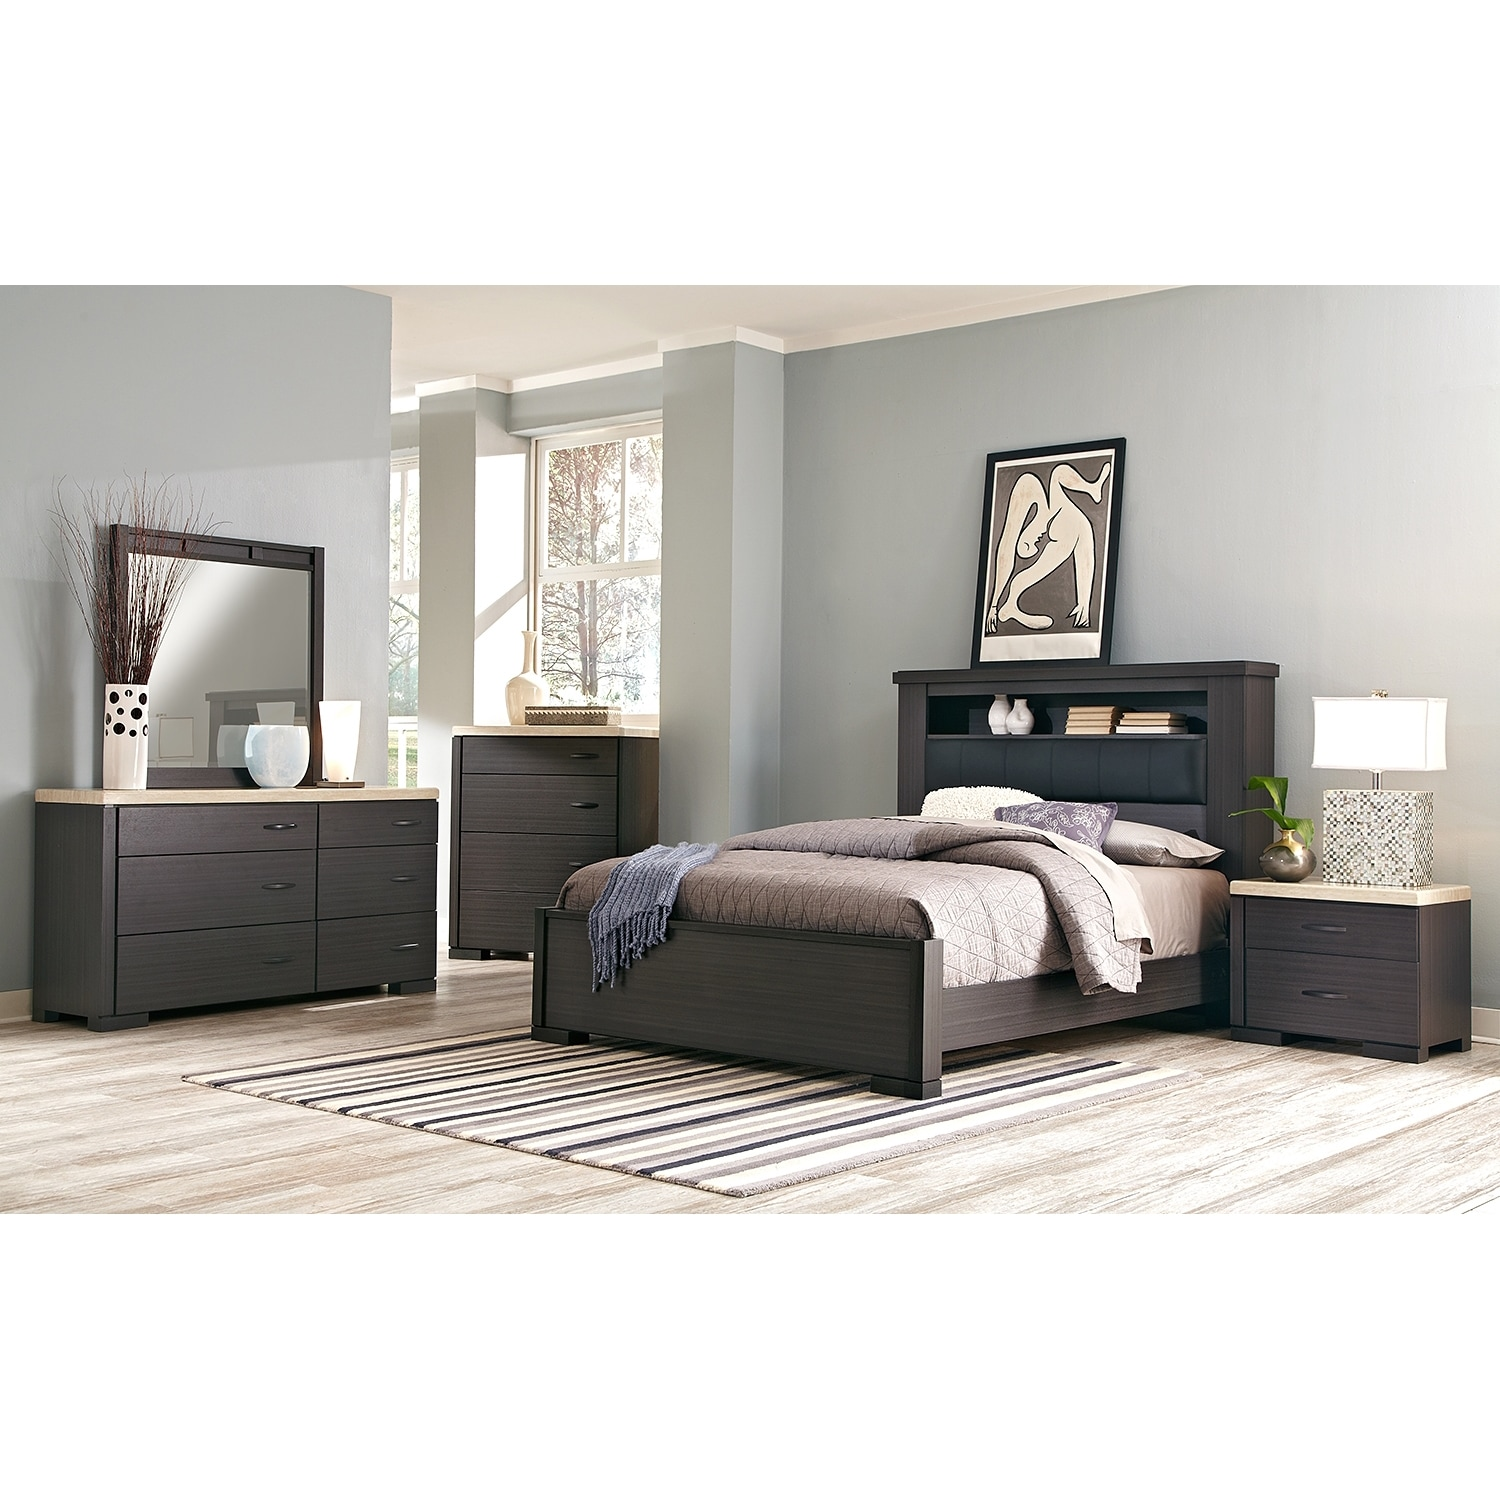 Camino 7 Piece Queen Bedroom Set Charcoal And Ivory